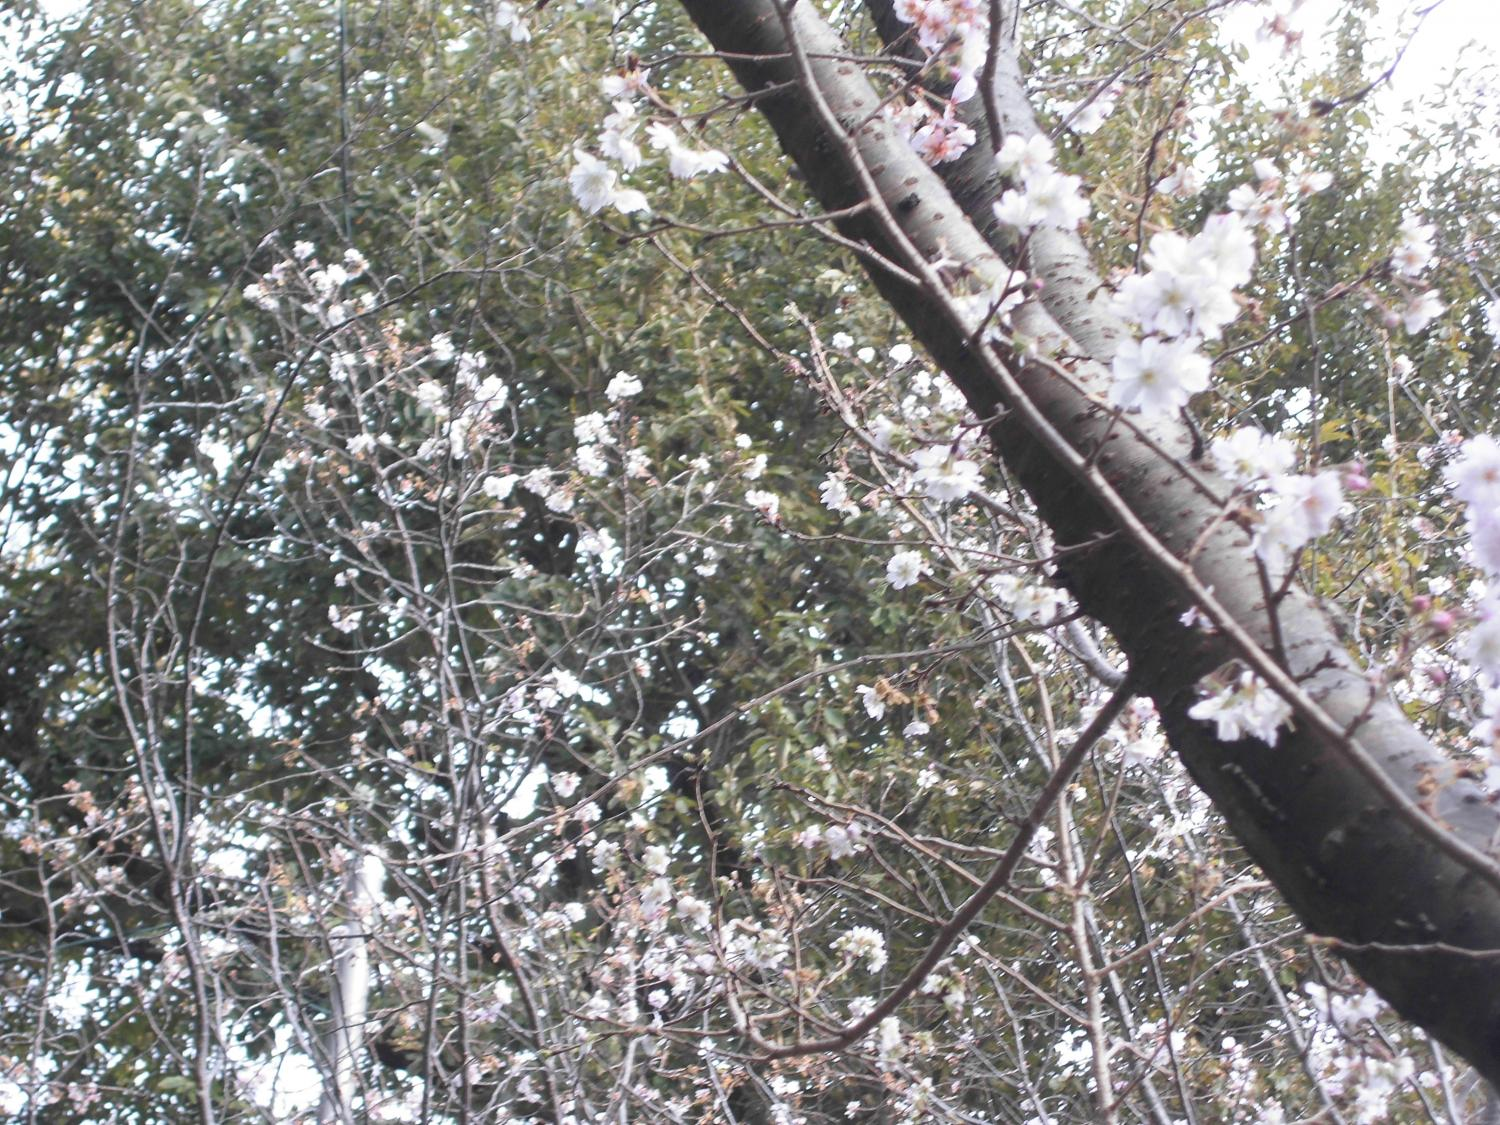 Cherry blossoms bloom this year in winter